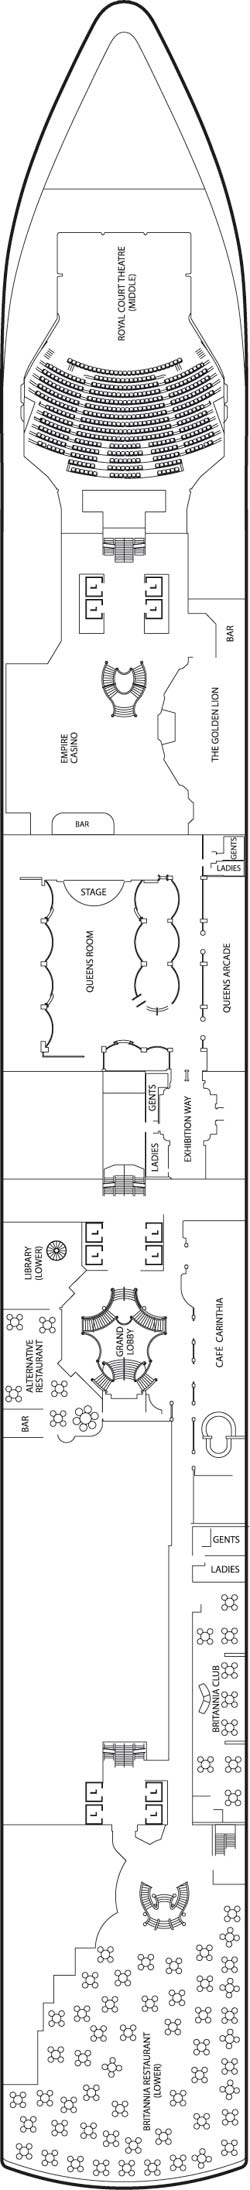 Deck Two Deck Plan